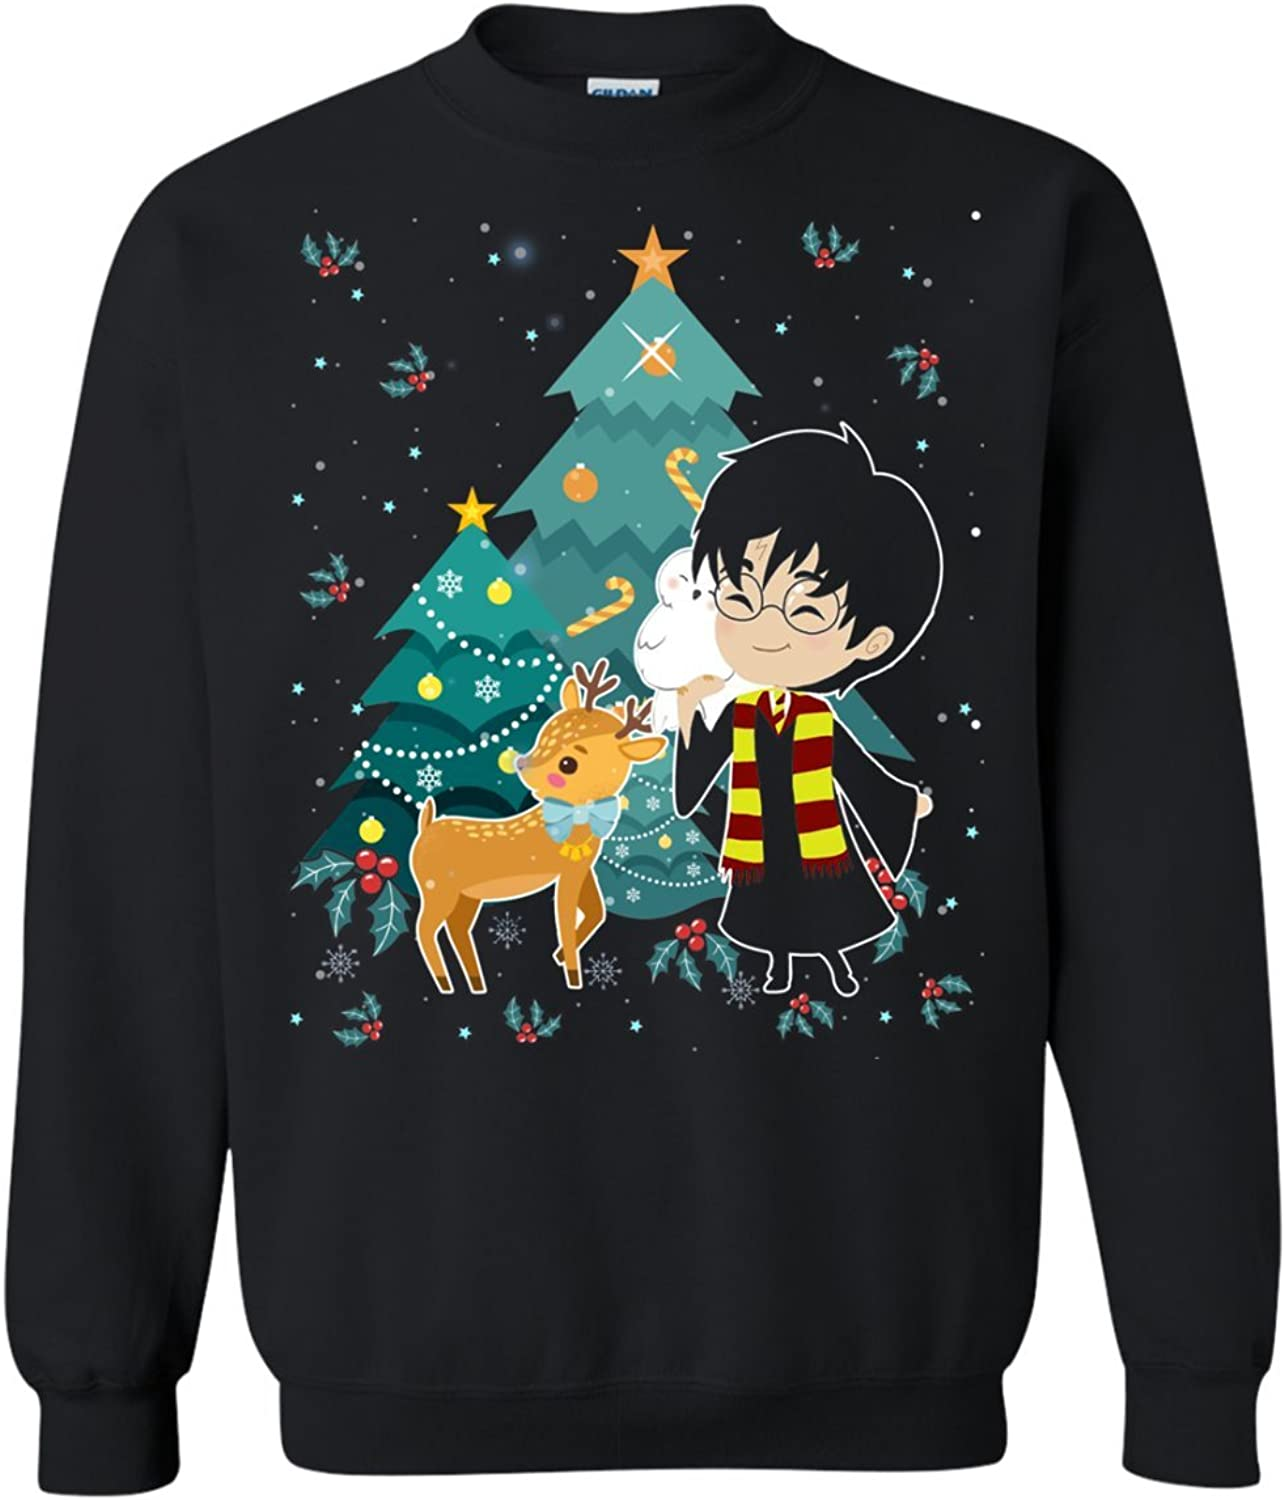 90s Christmas Sweaters.Funny 80s Clothes For Women Mens Girls Boy Gifts Harry